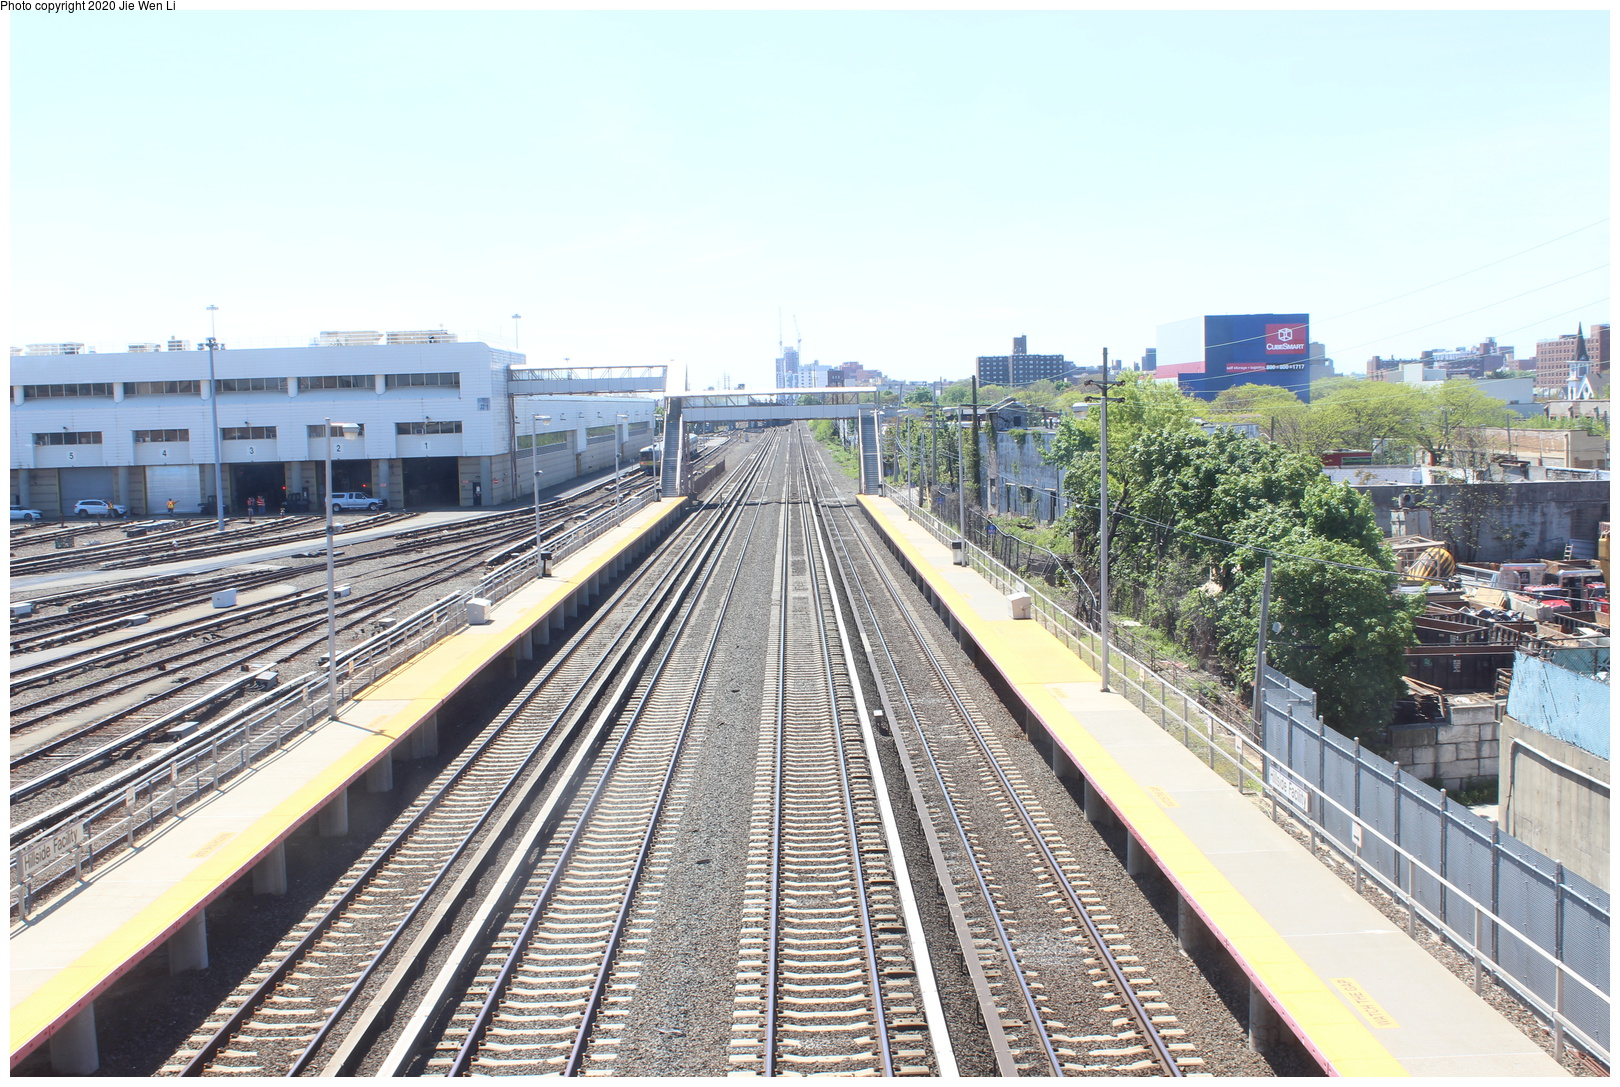 (850k, 1620x1087)<br><b>Country:</b> United States<br><b>City:</b> New York<br><b>System:</b> Long Island Rail Road<br><b>Location:</b> LIRR Holban-Hillside Maint. Complex/Yard<br><b>Photo by:</b> Jie Wen Li<br><b>Date:</b> 5/11/2019<br><b>Notes:</b> Shop tour sponsored by ERA. Overpass view towards Jamaica.<br><b>Viewed (this week/total):</b> 3 / 46